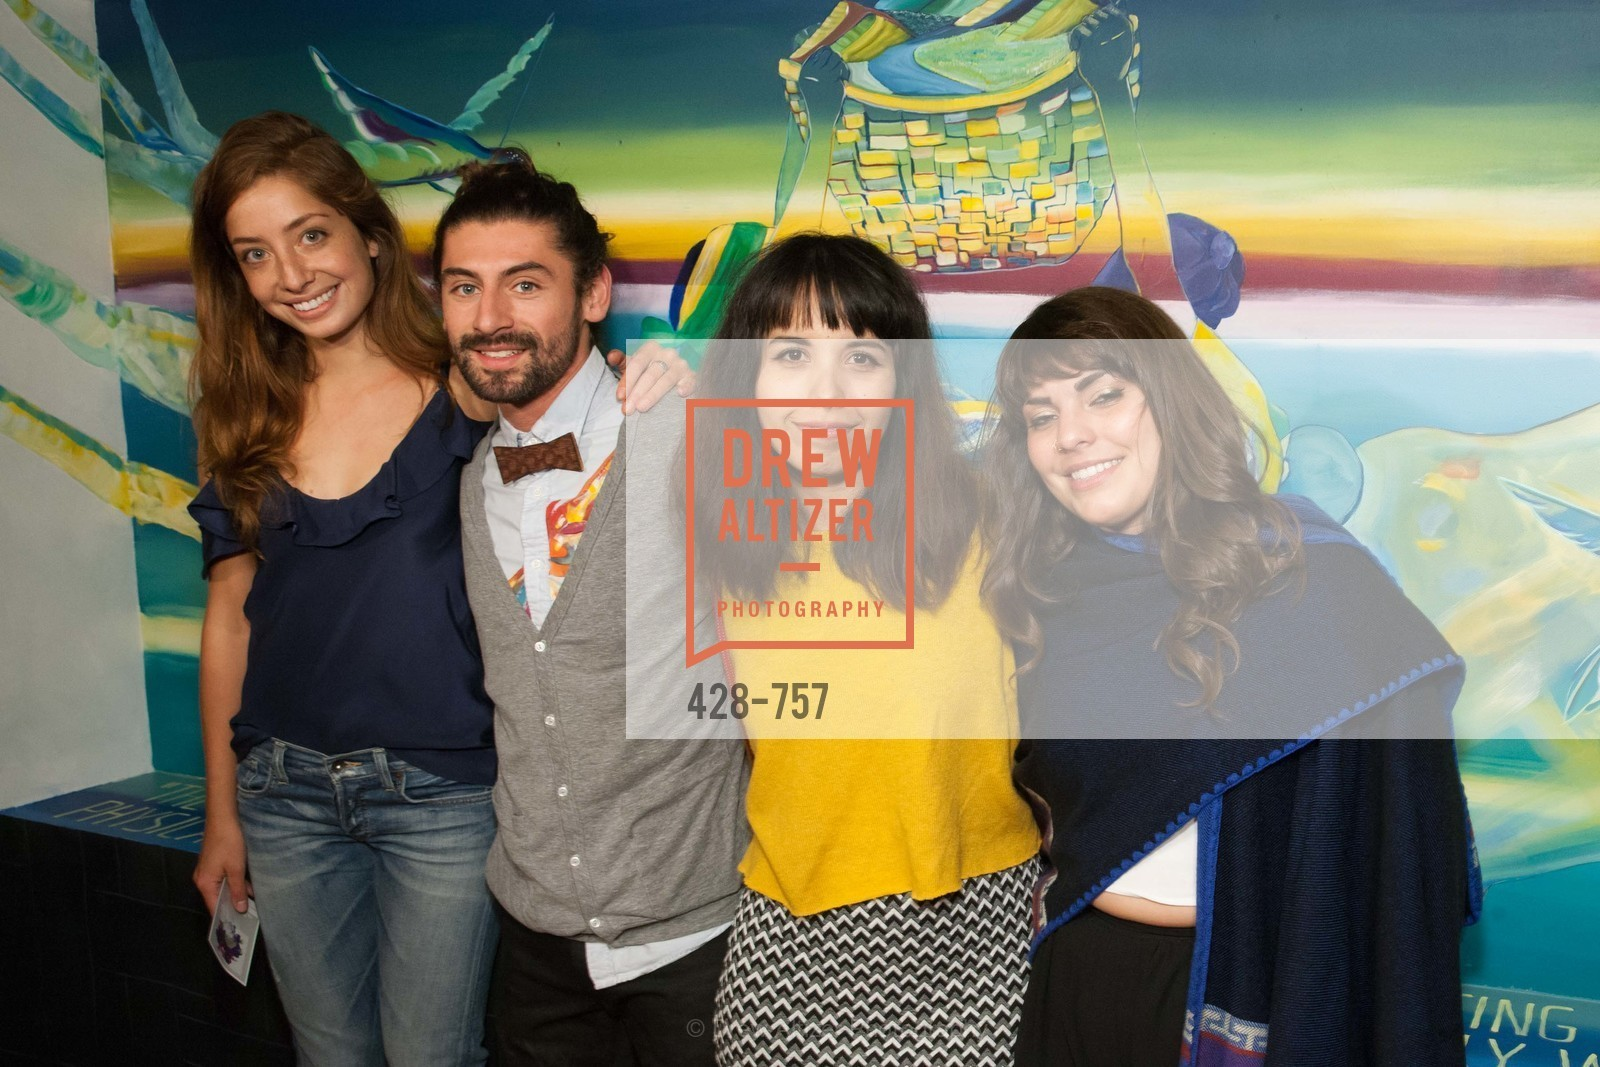 Zuri Ojeda, Ivan Lopez, Lucia Leal, Alexa Trevino, HOMELESS PRENATAL PROGRAM Our House, Our Mission Gala, US, May 30th, 2015,Drew Altizer, Drew Altizer Photography, full-service agency, private events, San Francisco photographer, photographer california